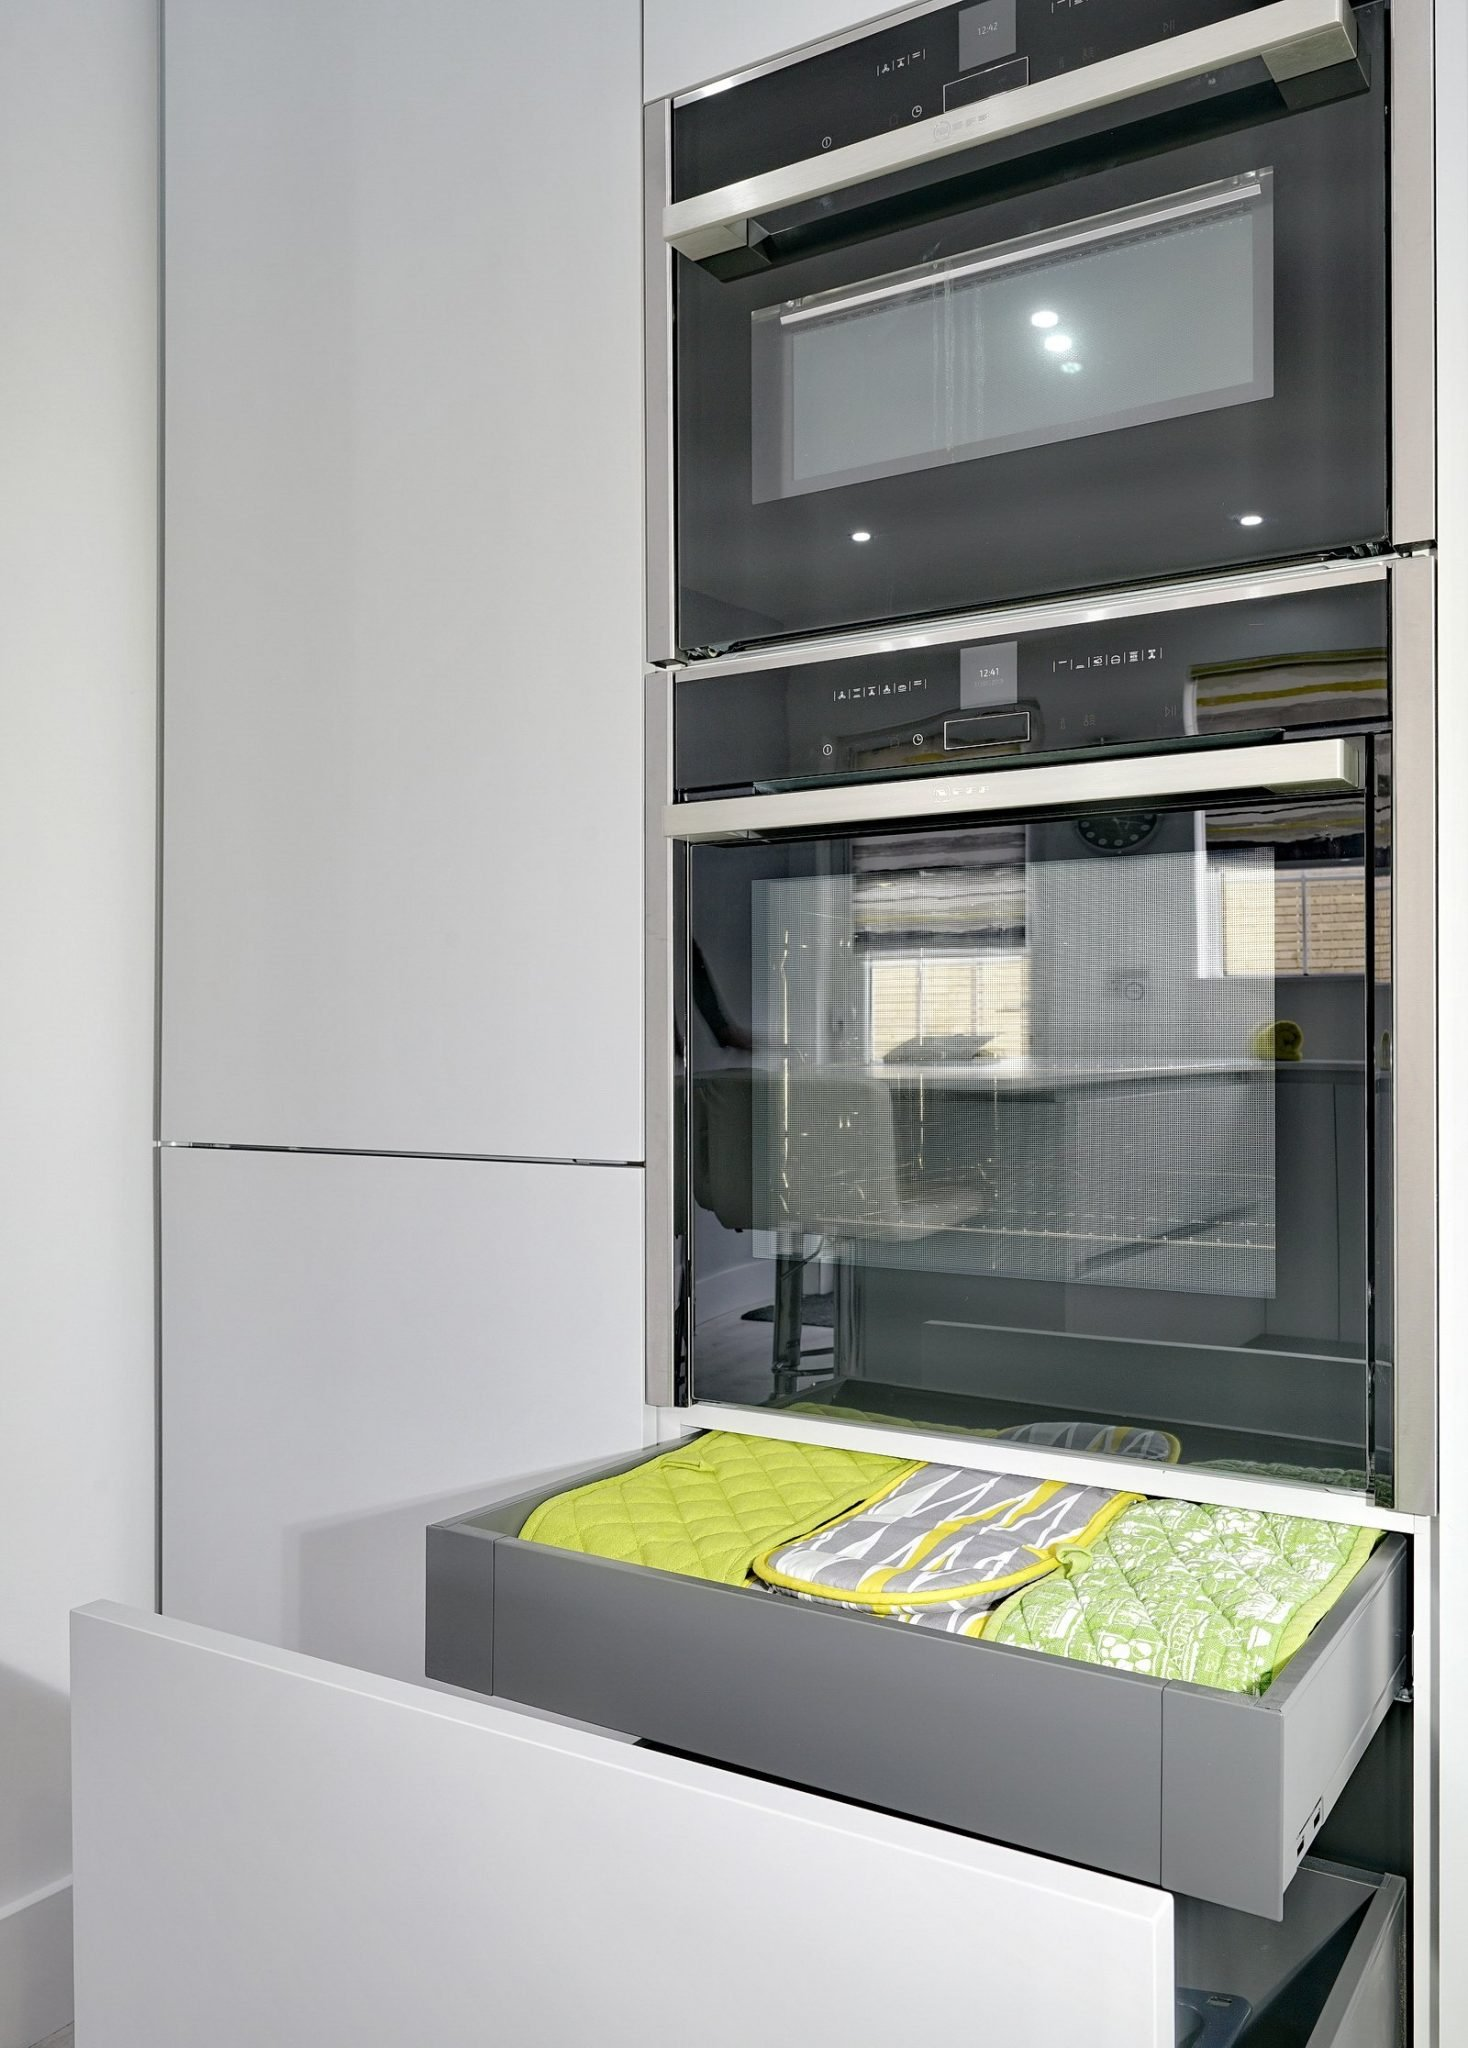 Neff ovens in white kitchen